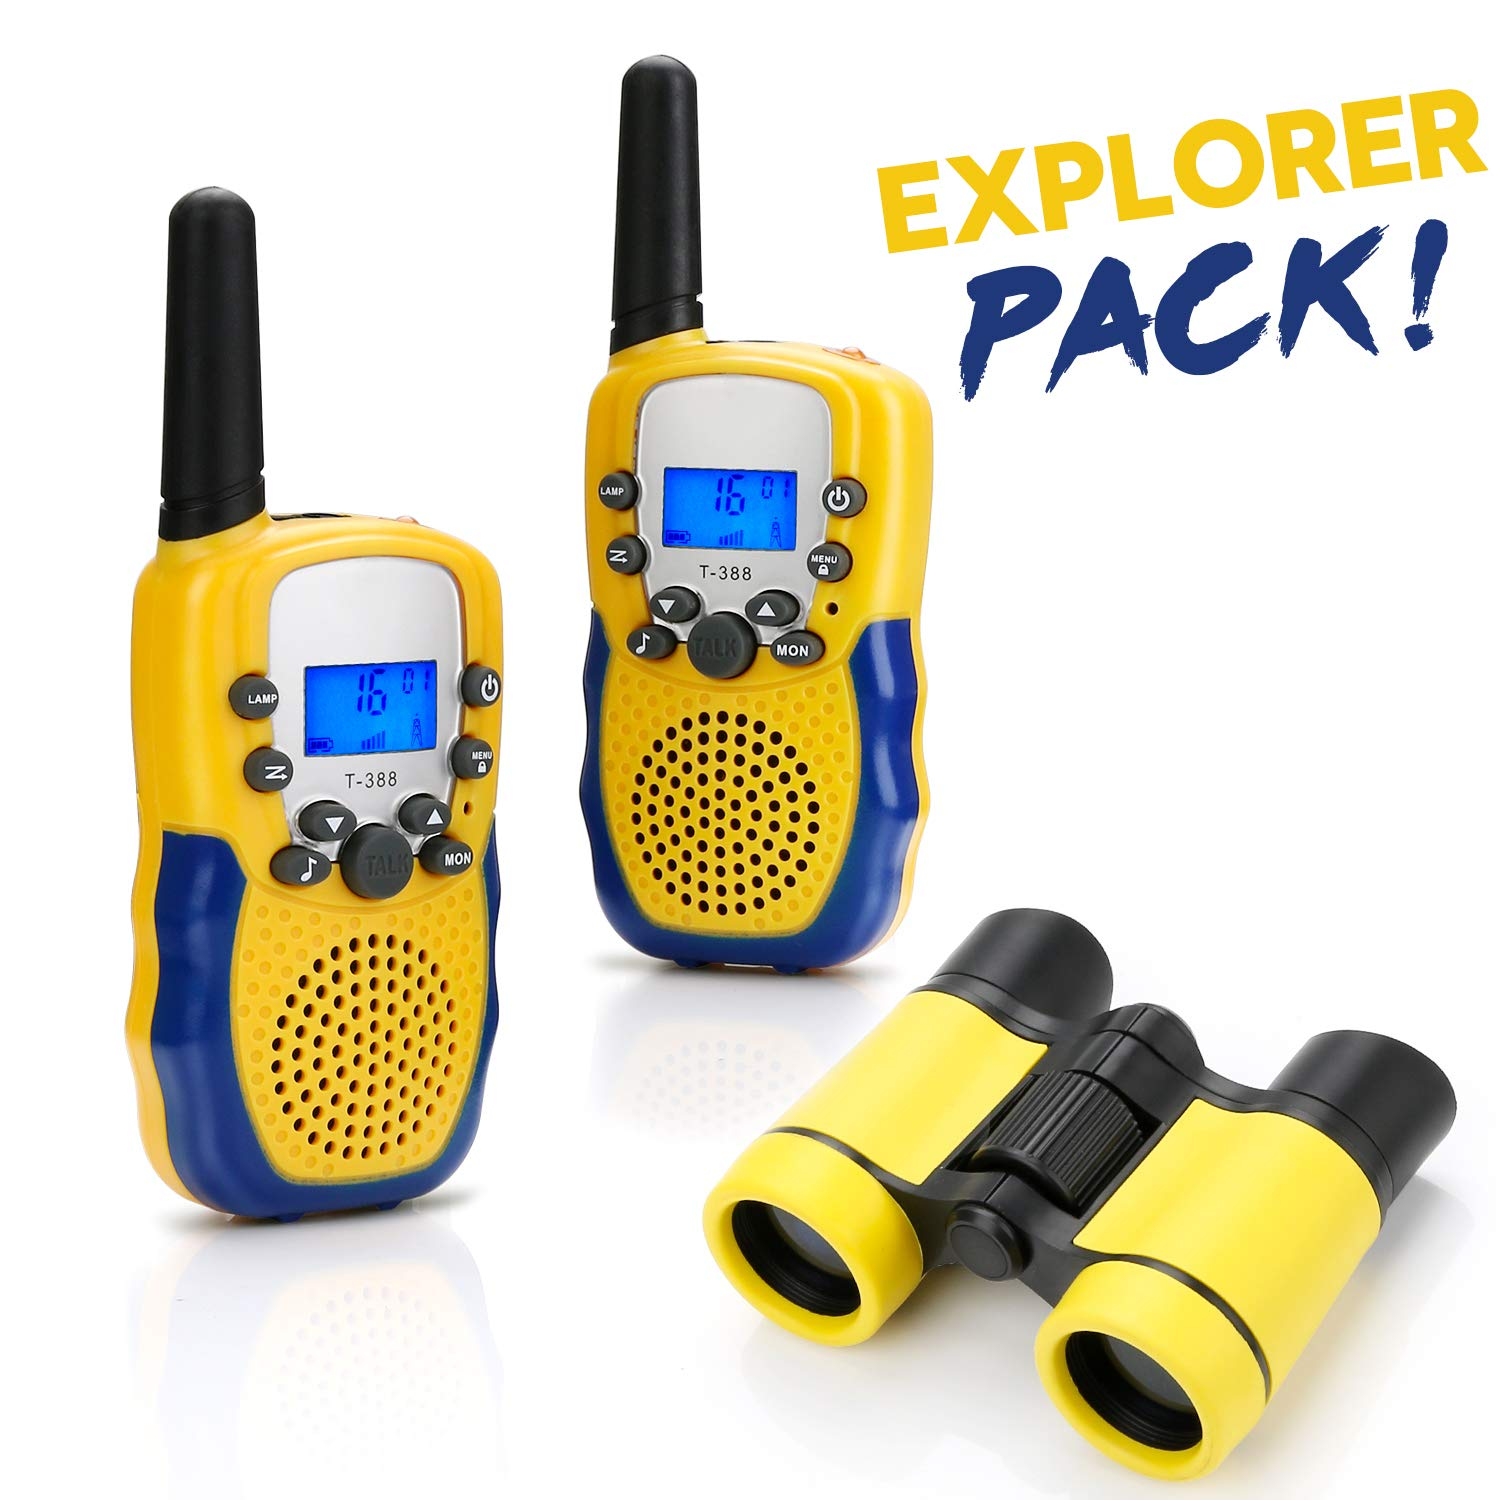 BBLIKE Walkie Talkies Toys Set for Kids 1Binoculars + 2 Whistle + 2 Long Range Walkie Talkie and Straps + 1 Storage Bag, with Flashlight and LCD Screen for Toddler Boys Girls Adults by BBLIKE (Image #1)